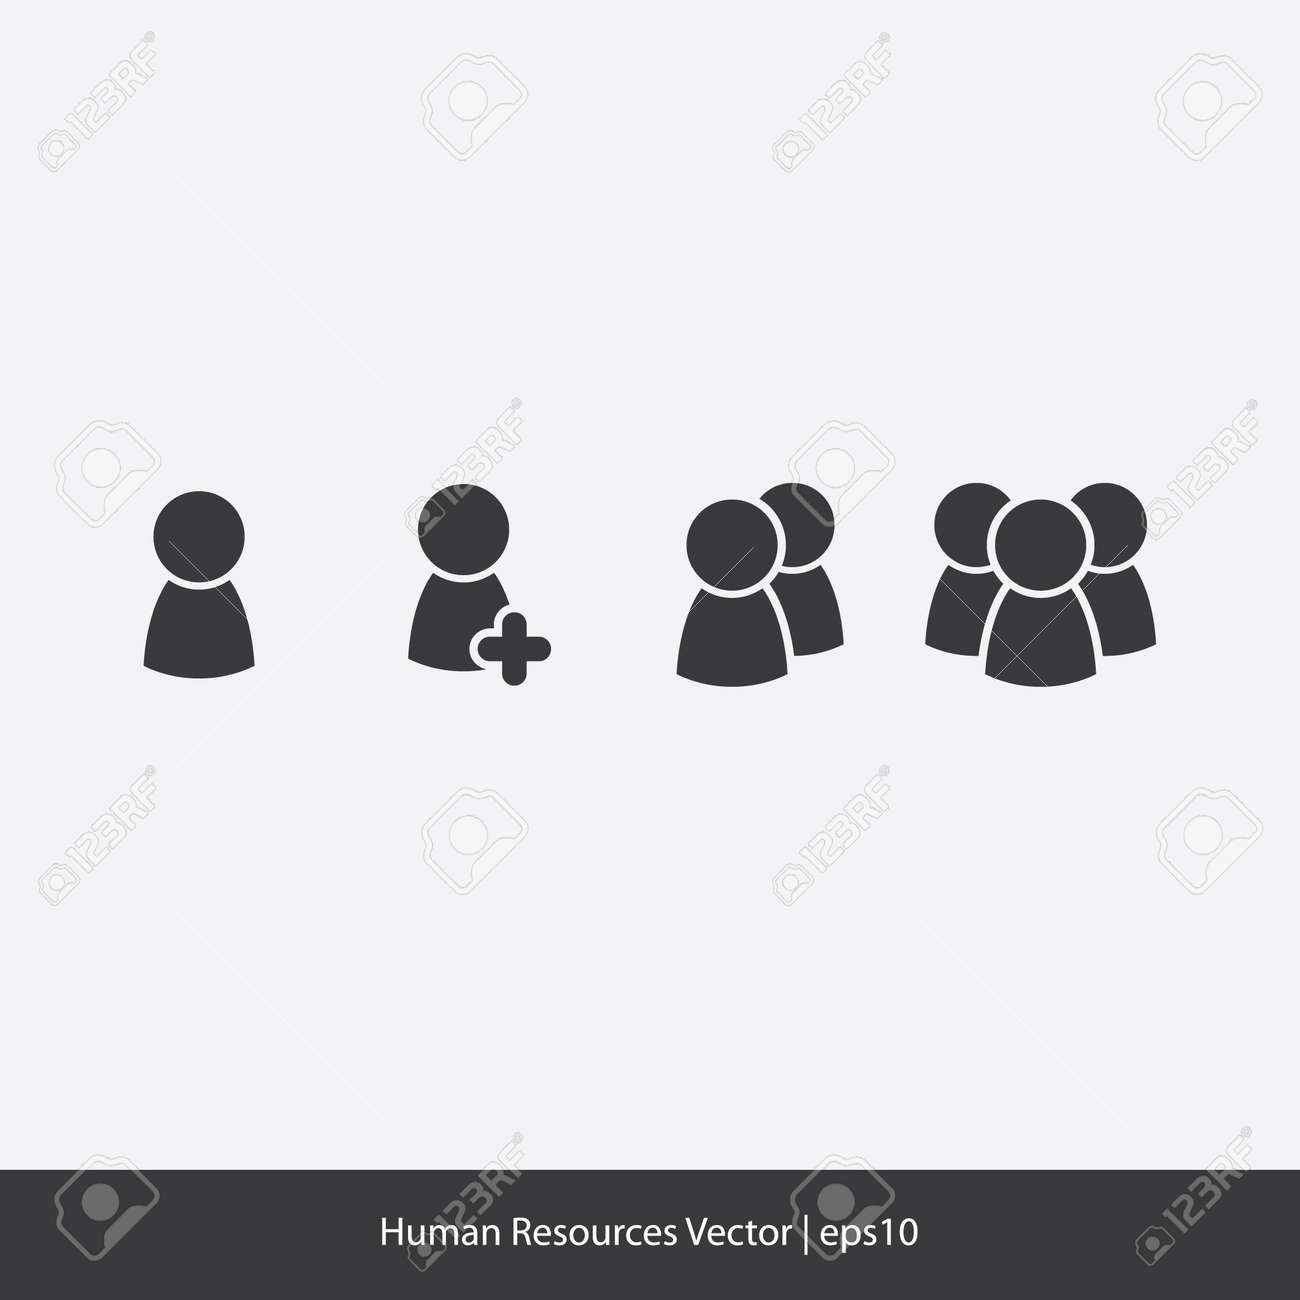 Human Resources Icons Stock Vector - 20332049